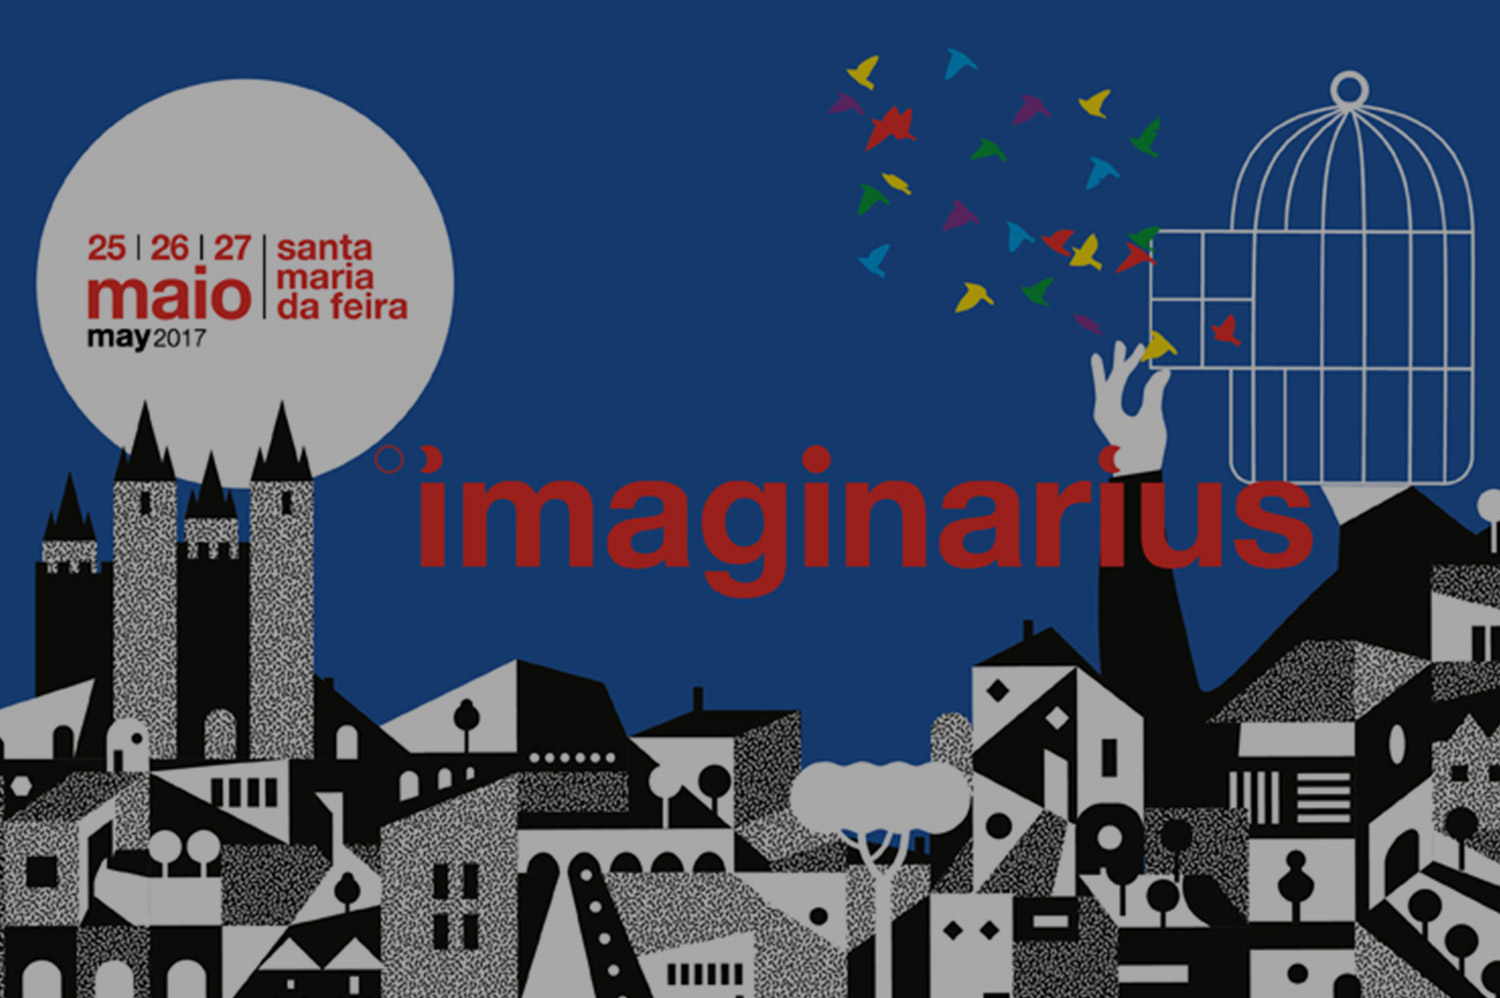 Imaginarius distinguido nos German Designs Awards 1